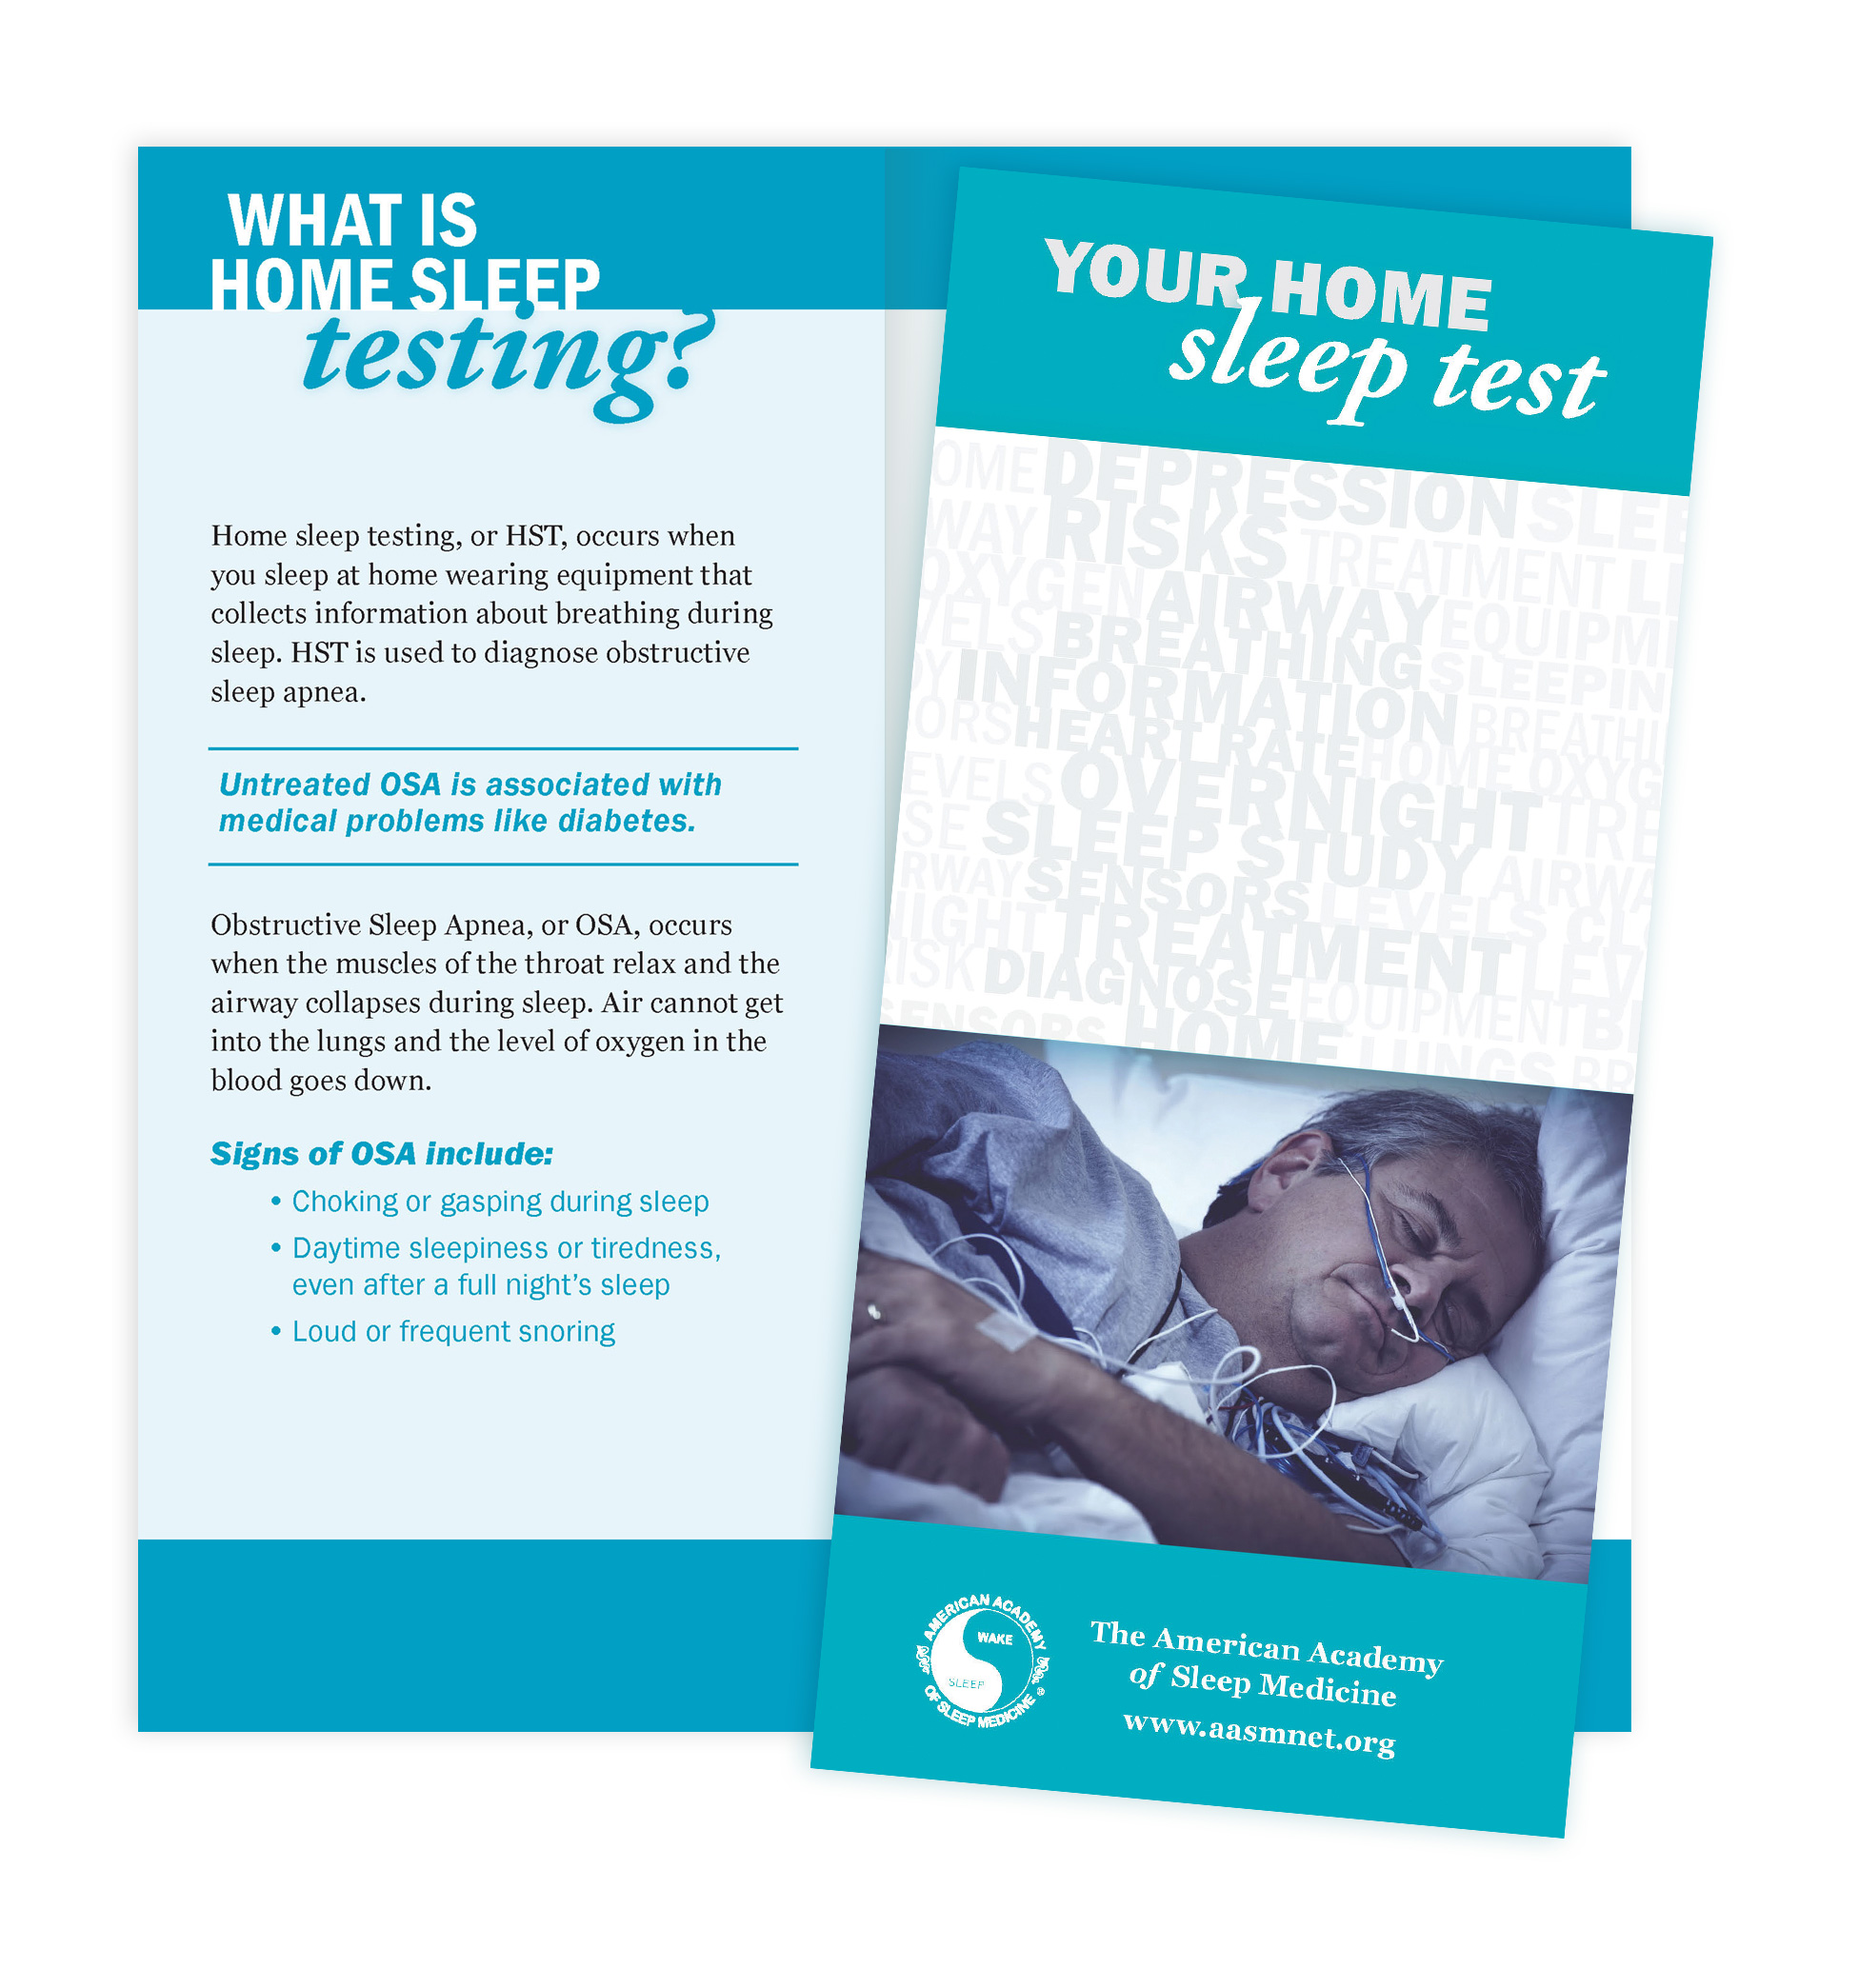 Your Home Sleep Test Patient Education Brochures (50 brochures)